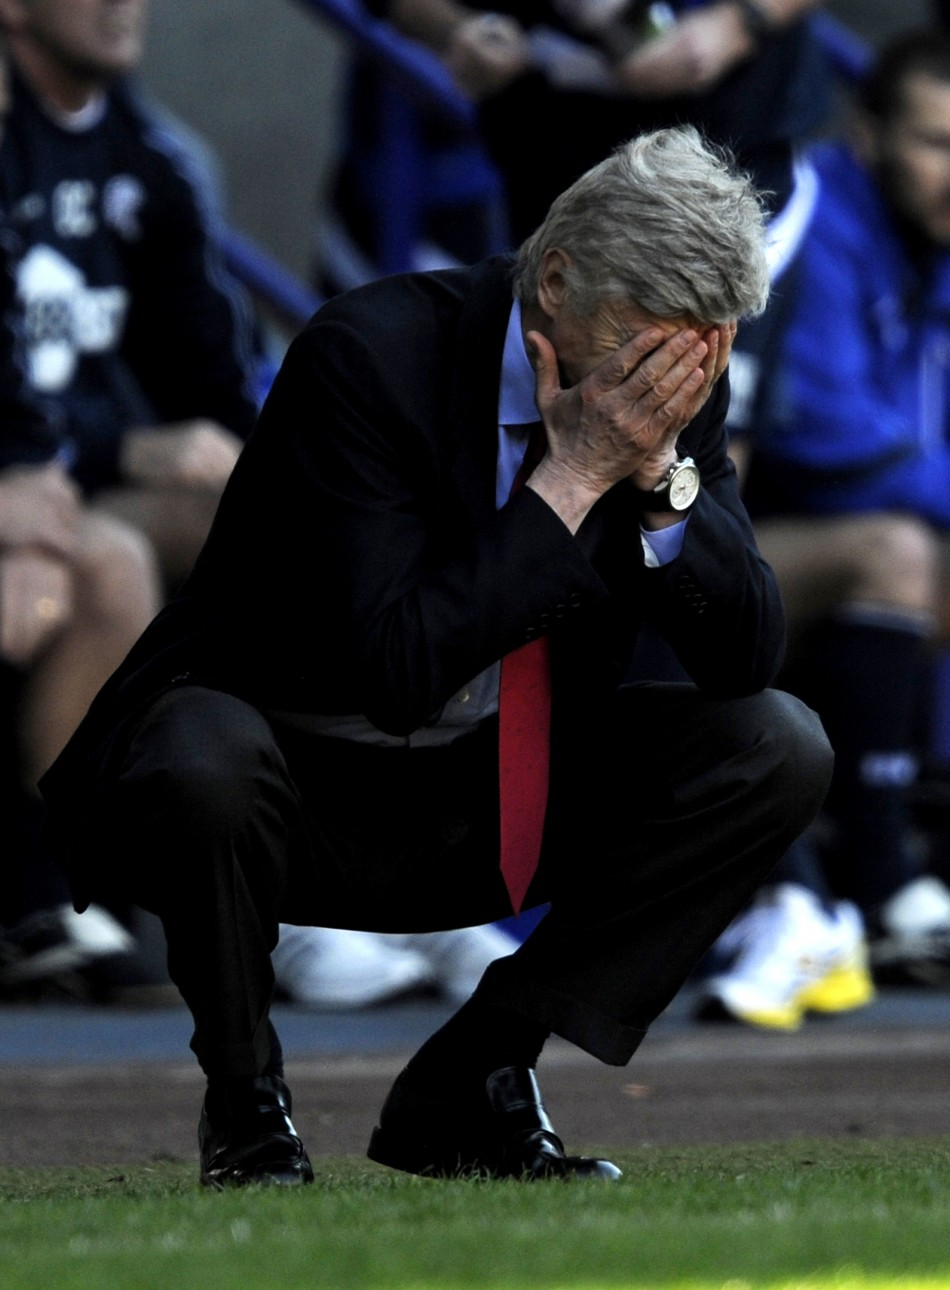 After a disappointing 2010/11 season in which Arsenal's trophy drought was extended to a sixth successive season, the pressure on Arsene Wenger has increased, just a little bit, ahead of the new campaign.